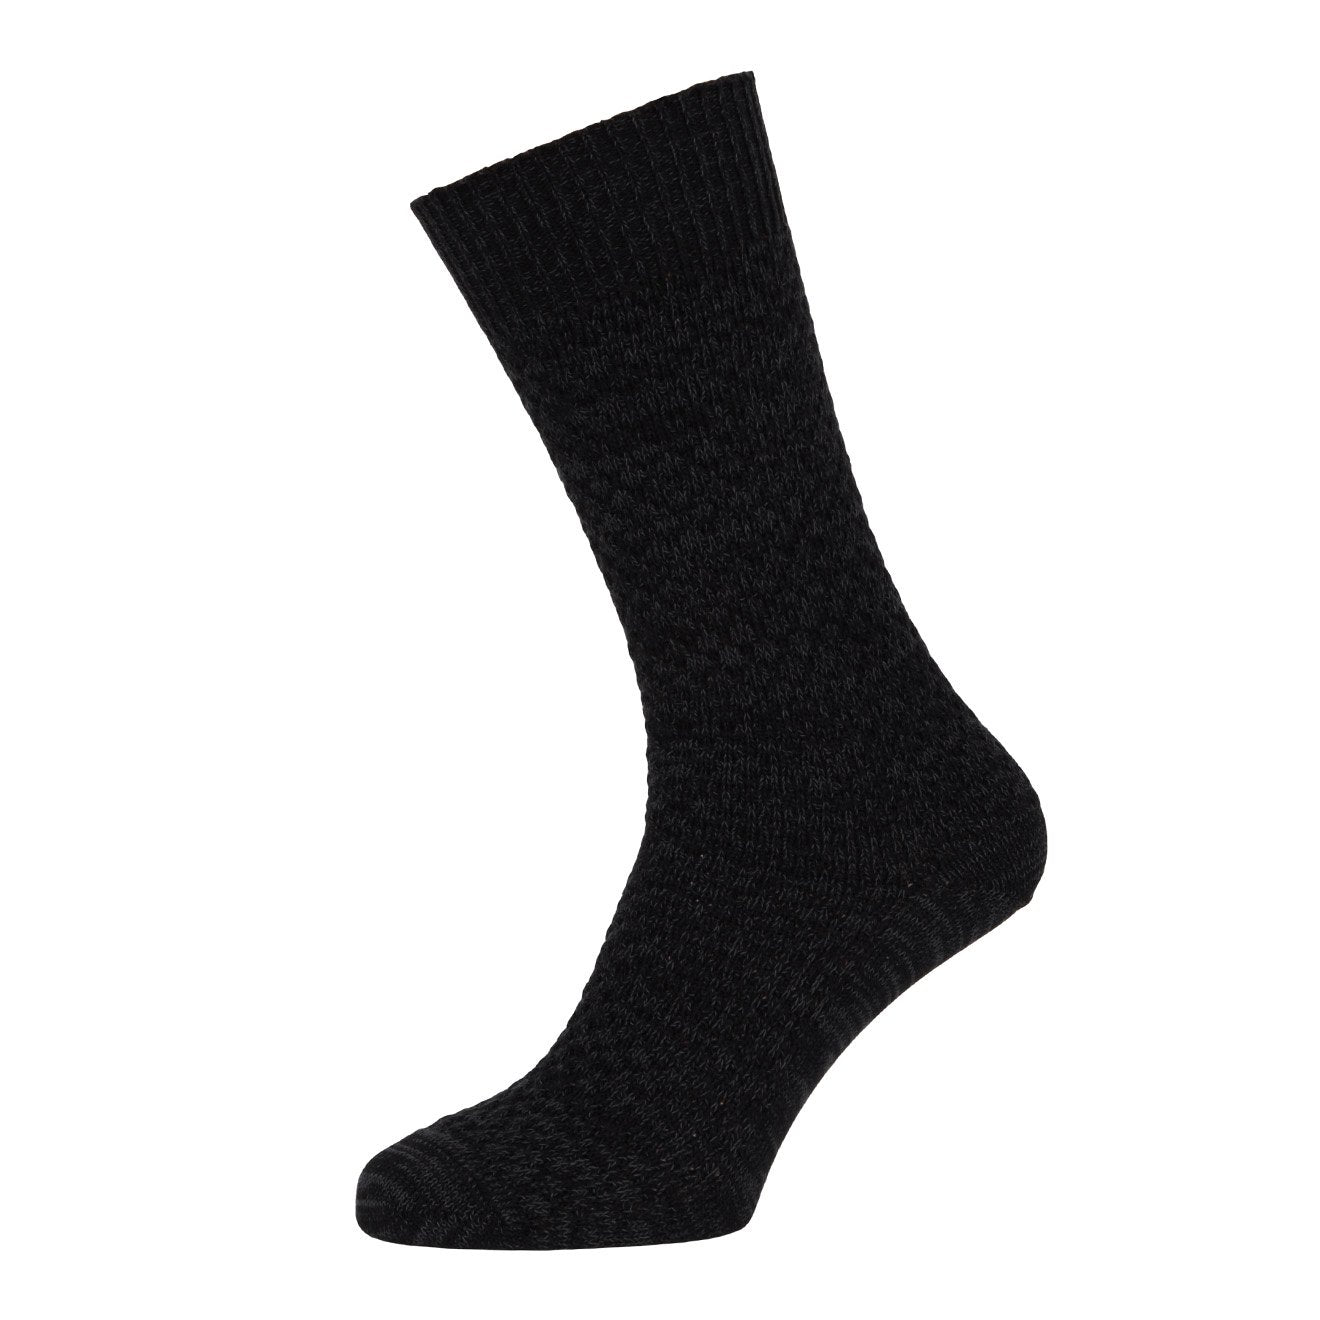 MP Crafted Garments Socks Oscar Black Light Blue